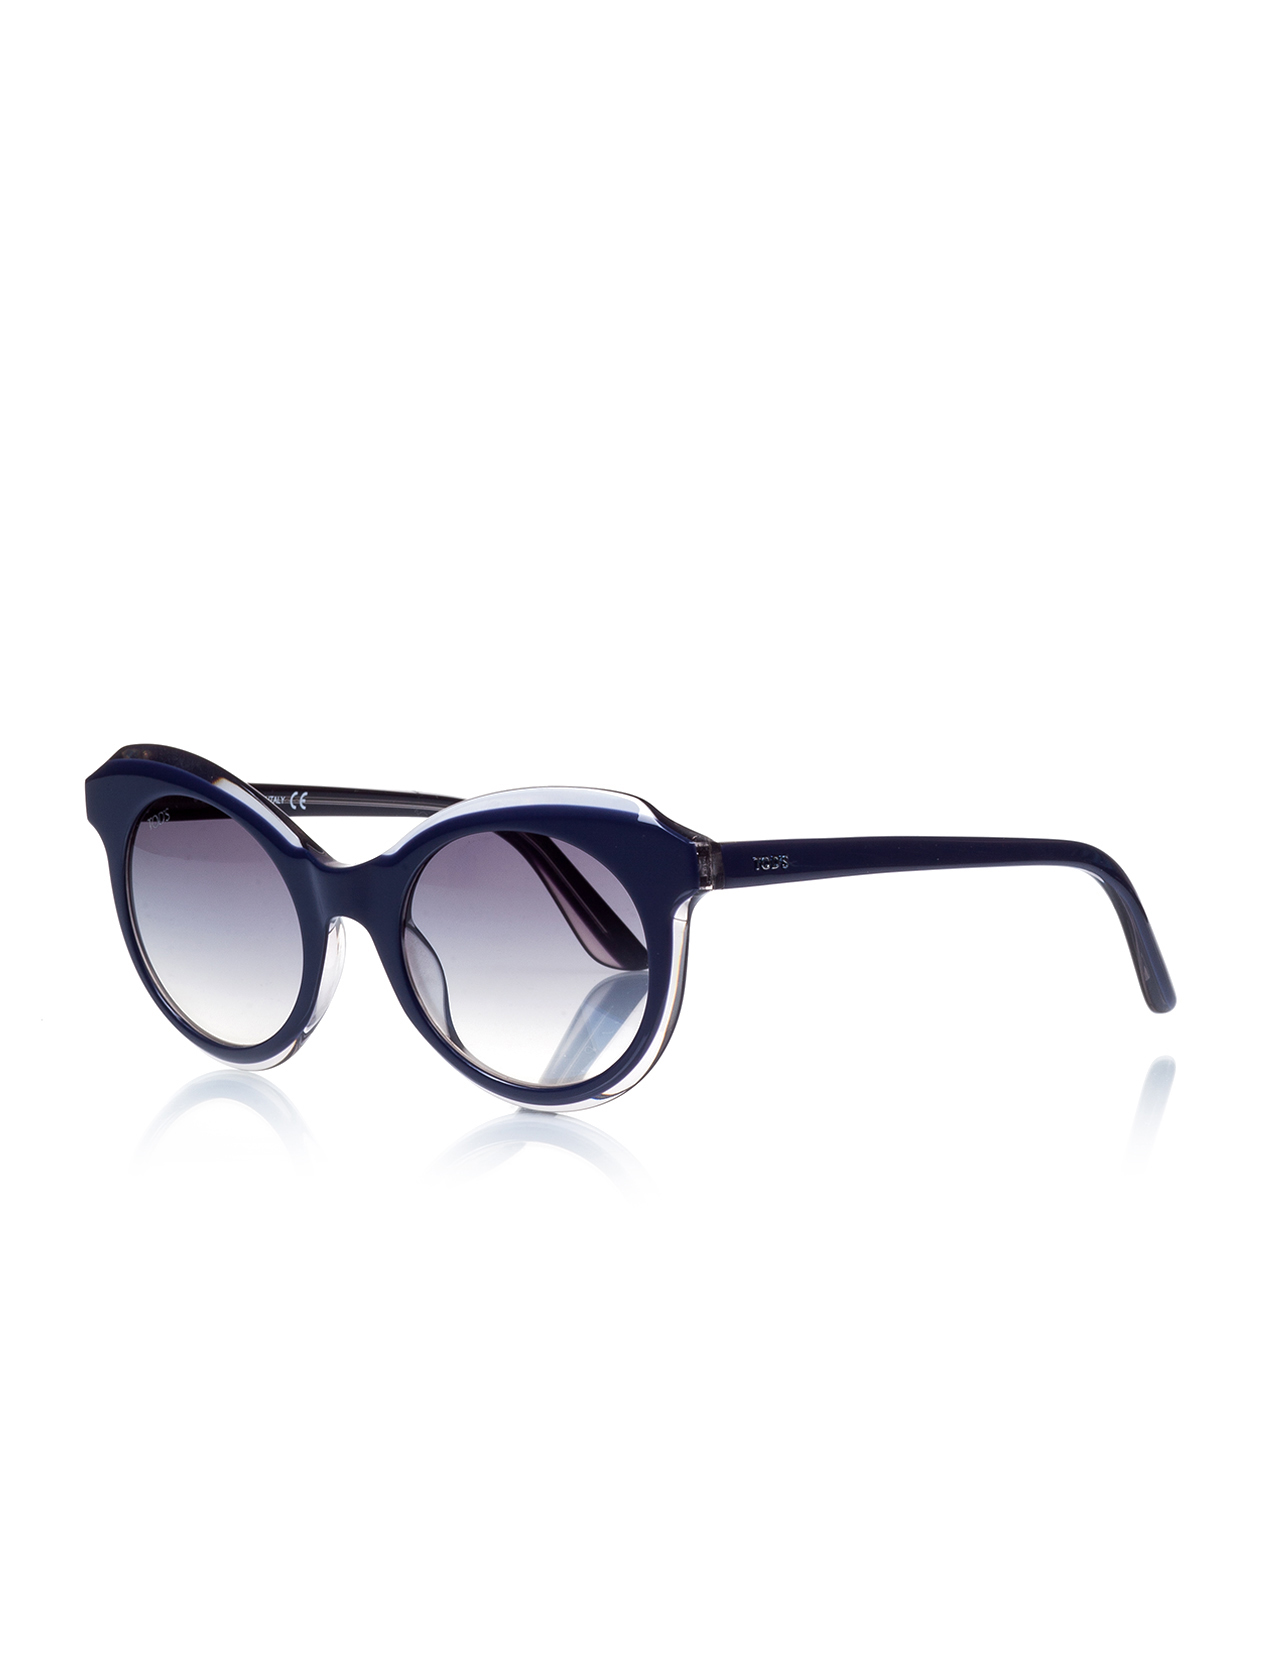 Women's sunglasses to 0161 92w bone navy blue organic oval aval 48-20-140 tods